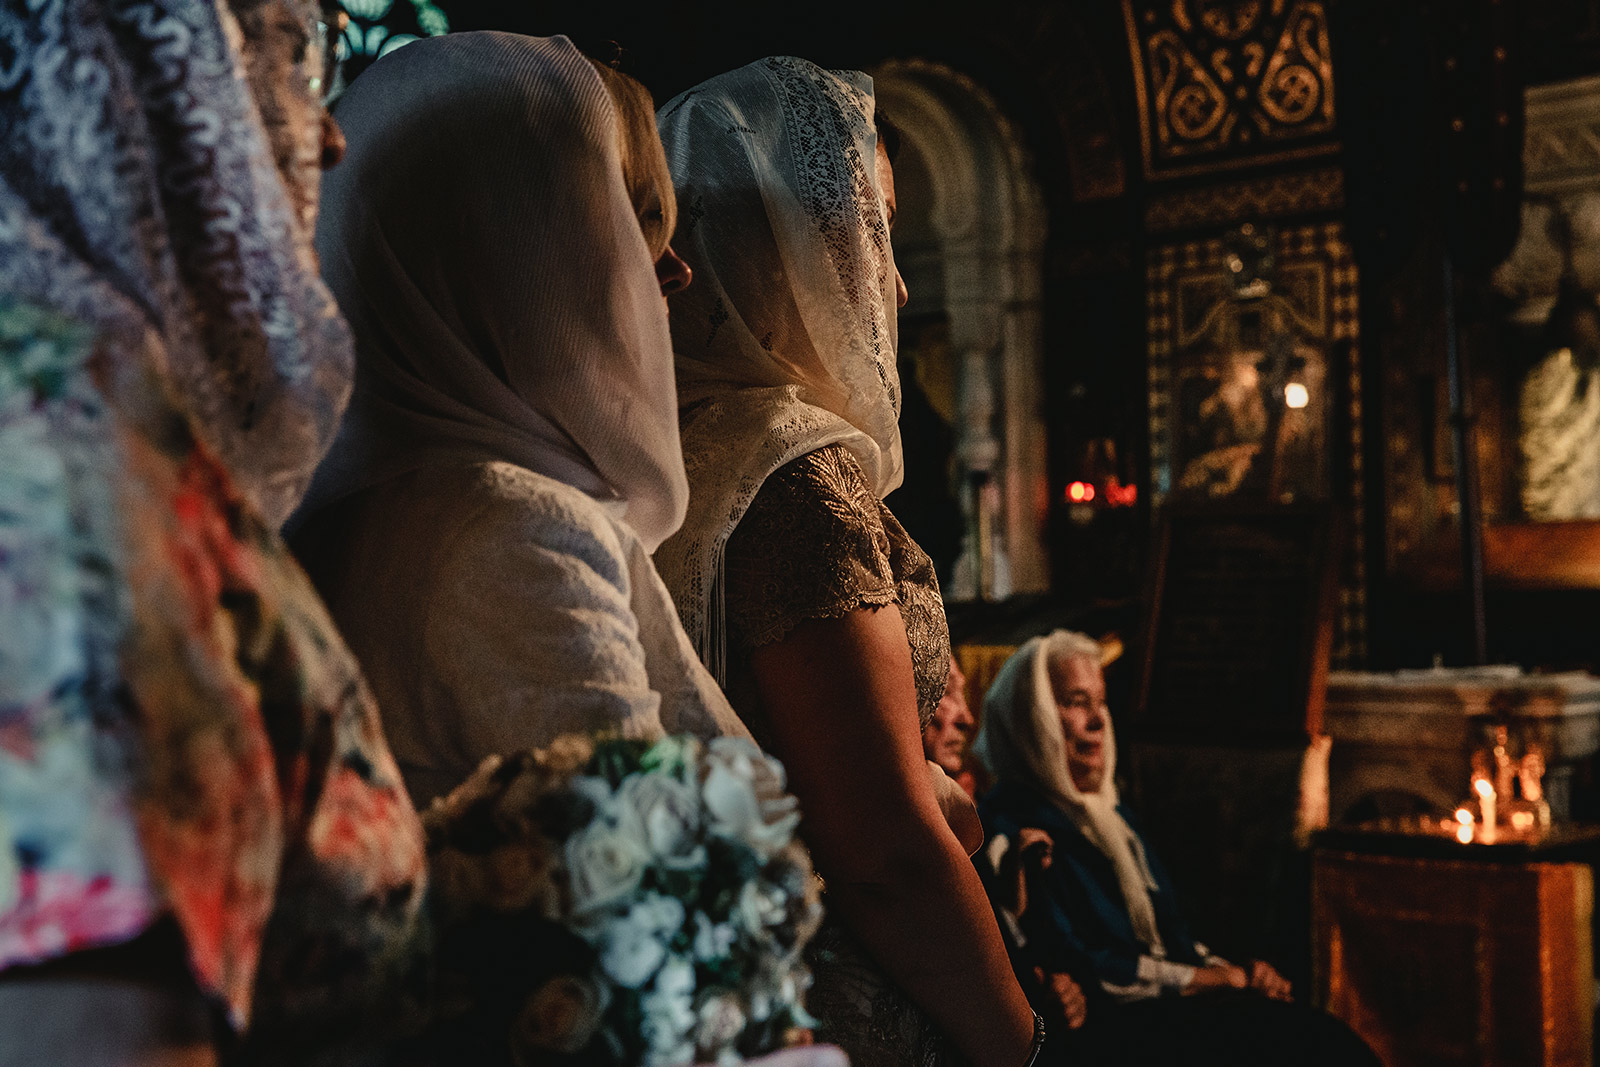 How to choose your wedding photographer 2018 2019 Best Wedding Photographercomment choisir son photographe de mariage 2018 2019 meilleur photographe de mariageLyon Photographe mariage Lyon Photographe reportage mariage Lyon